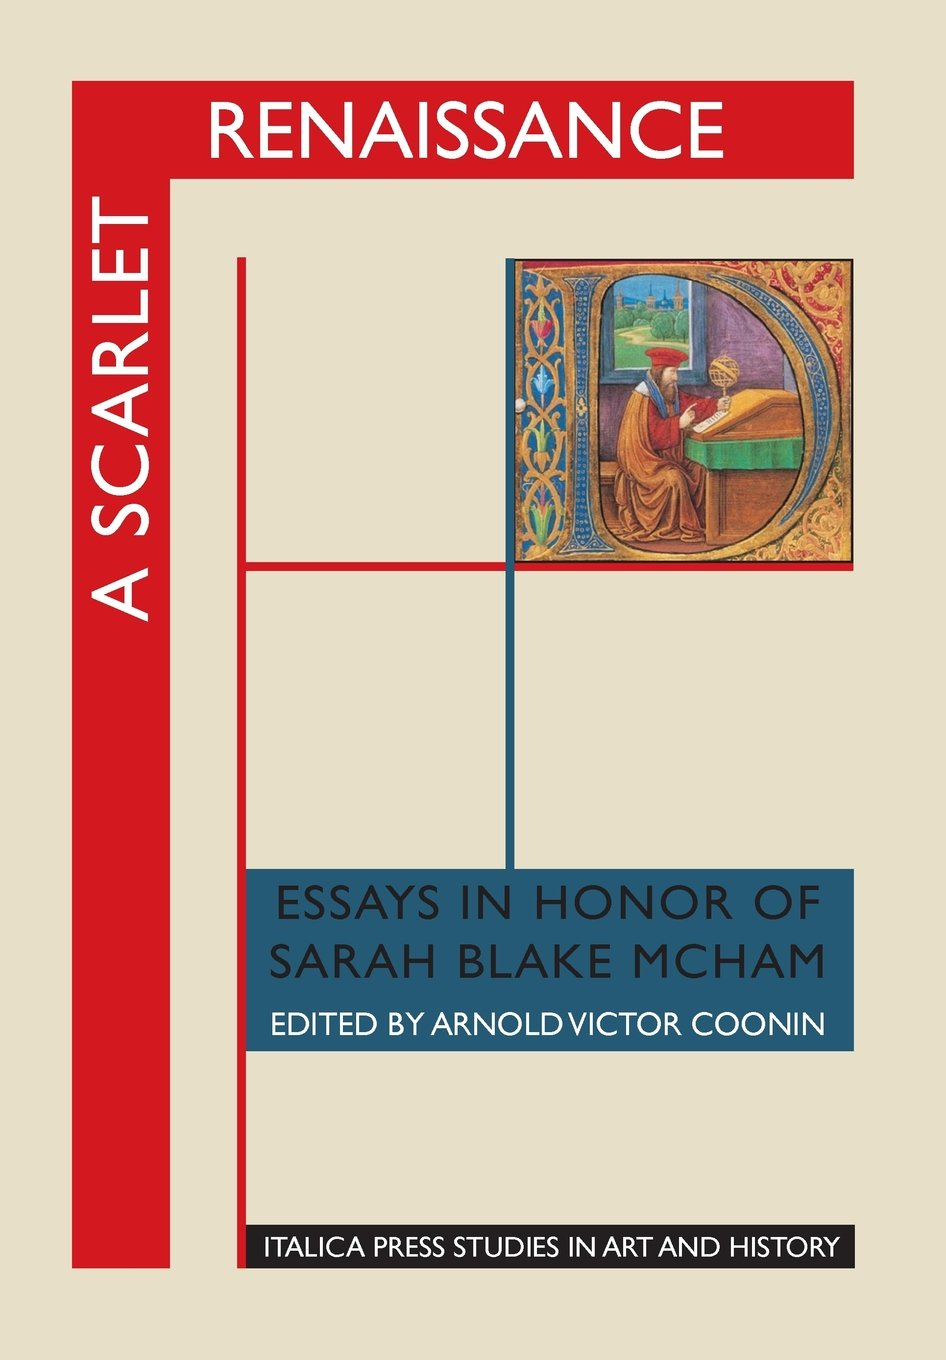 a scarlet renaissance essays in honor of sarah blake mcham a scarlet renaissance essays in honor of sarah blake mcham italica press studies in art history arnold victor coonin debra pincus 9781599102252